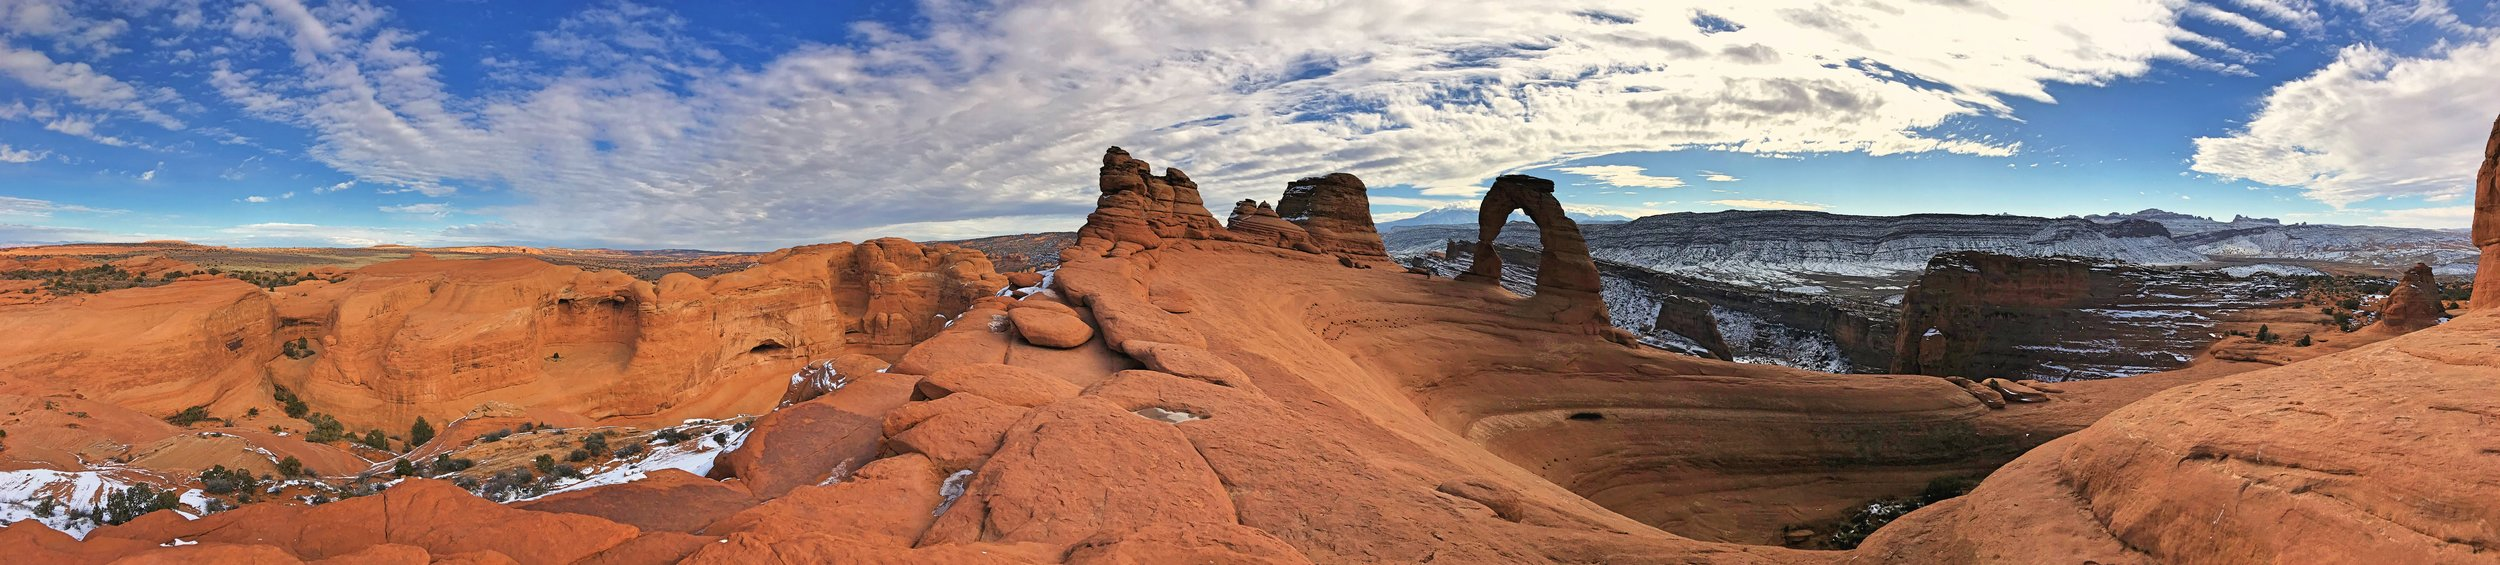 The scale of Delicate Arch will likely take you by surprise.